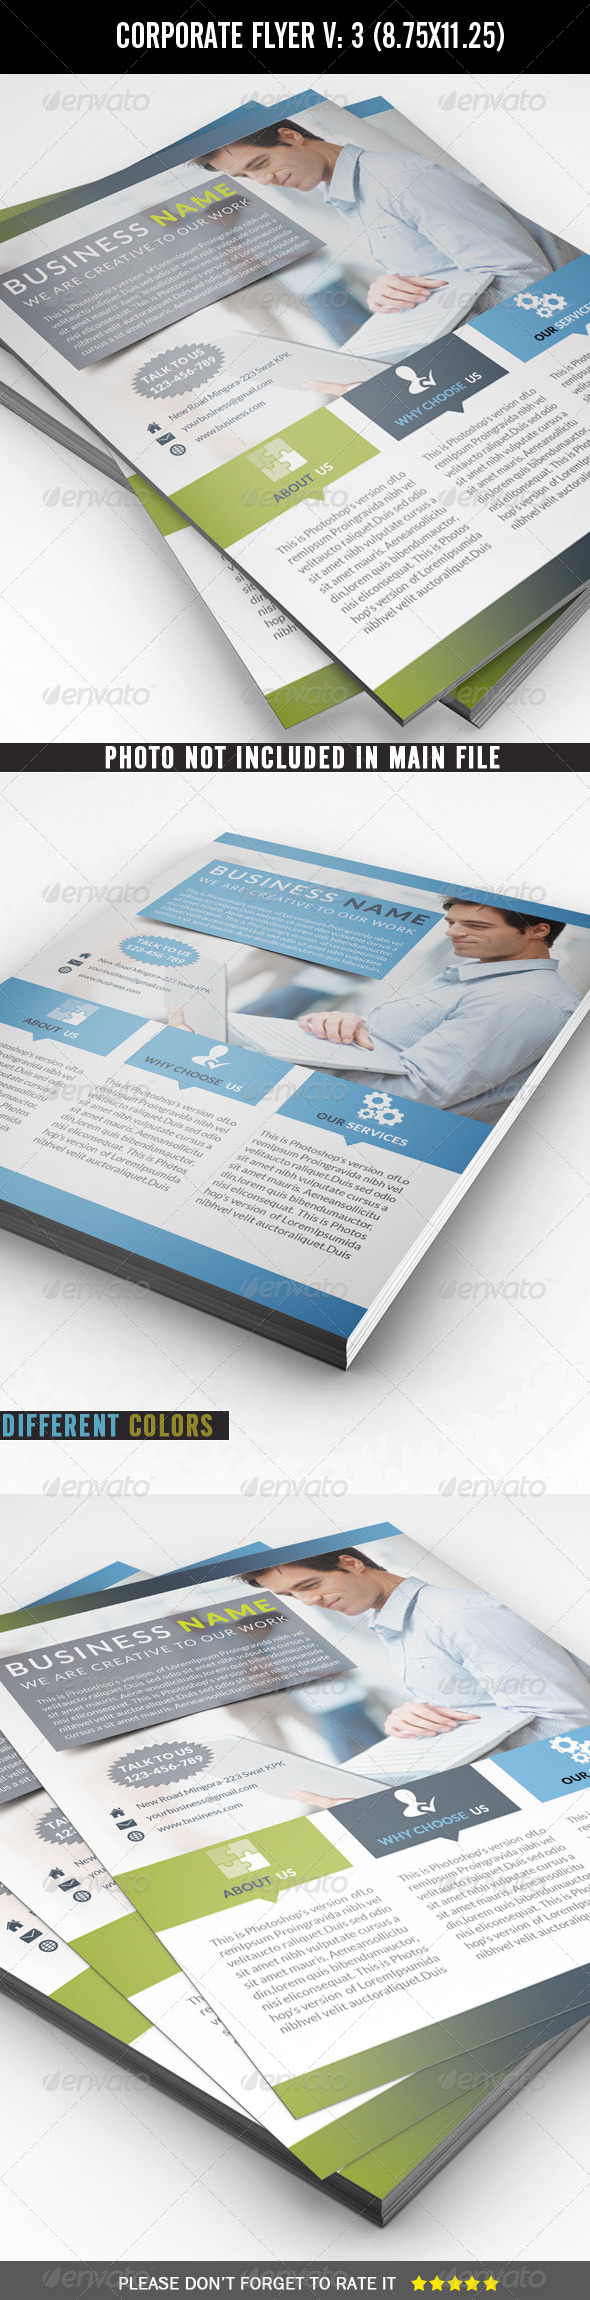 Corporate / Business Flyer - Corporate Flyers